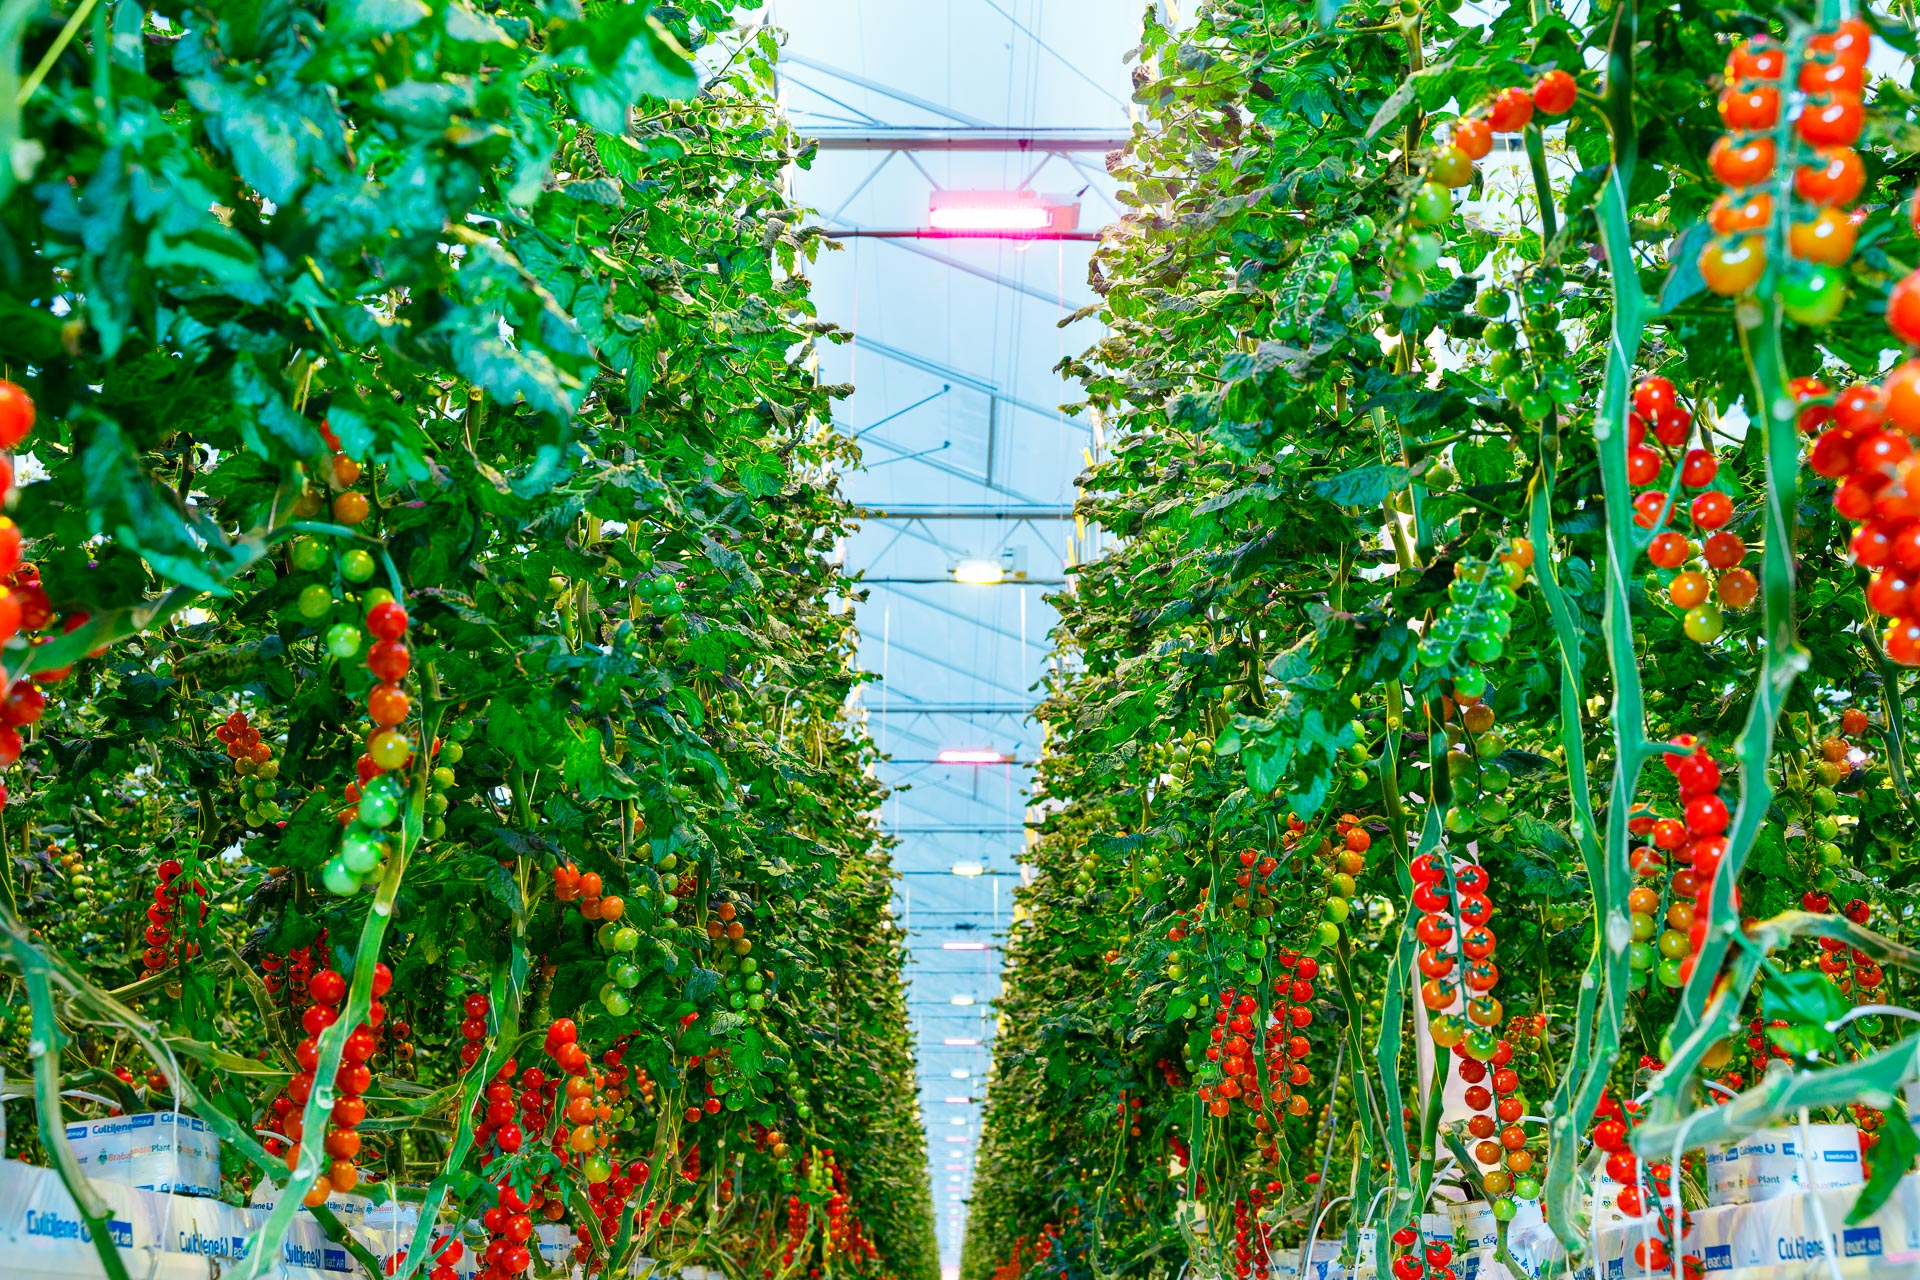 Tomatoes growing indoor in a glass greenhouse